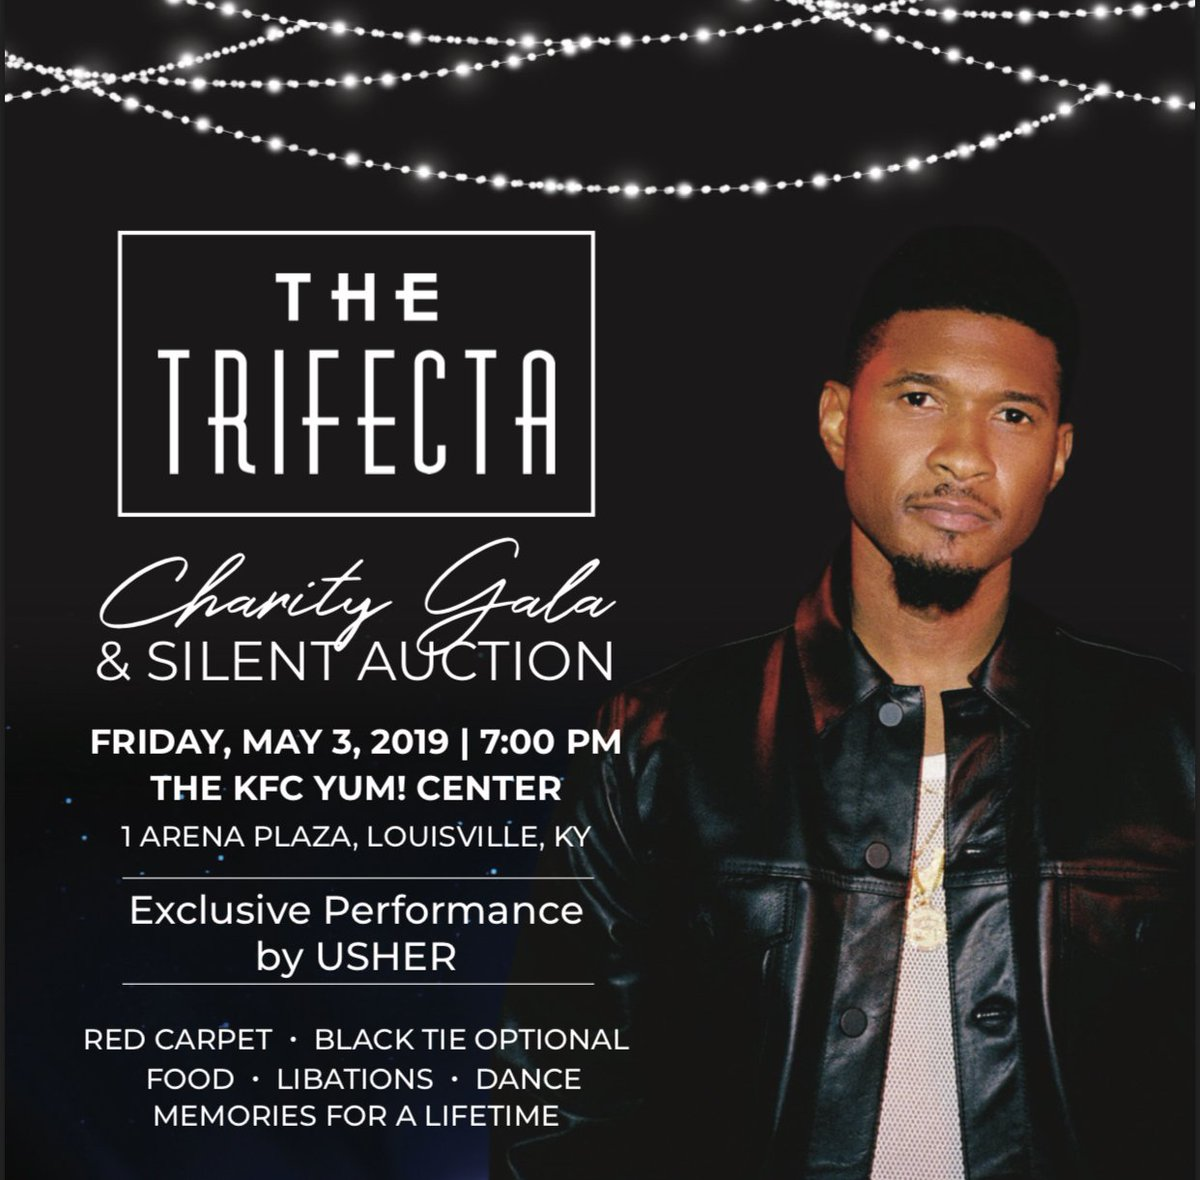 Kentucky! I cannot wait to celebrate Derby weekend with you all. @trifectagala #trifectagala https://t.co/r1DOEhRdzg